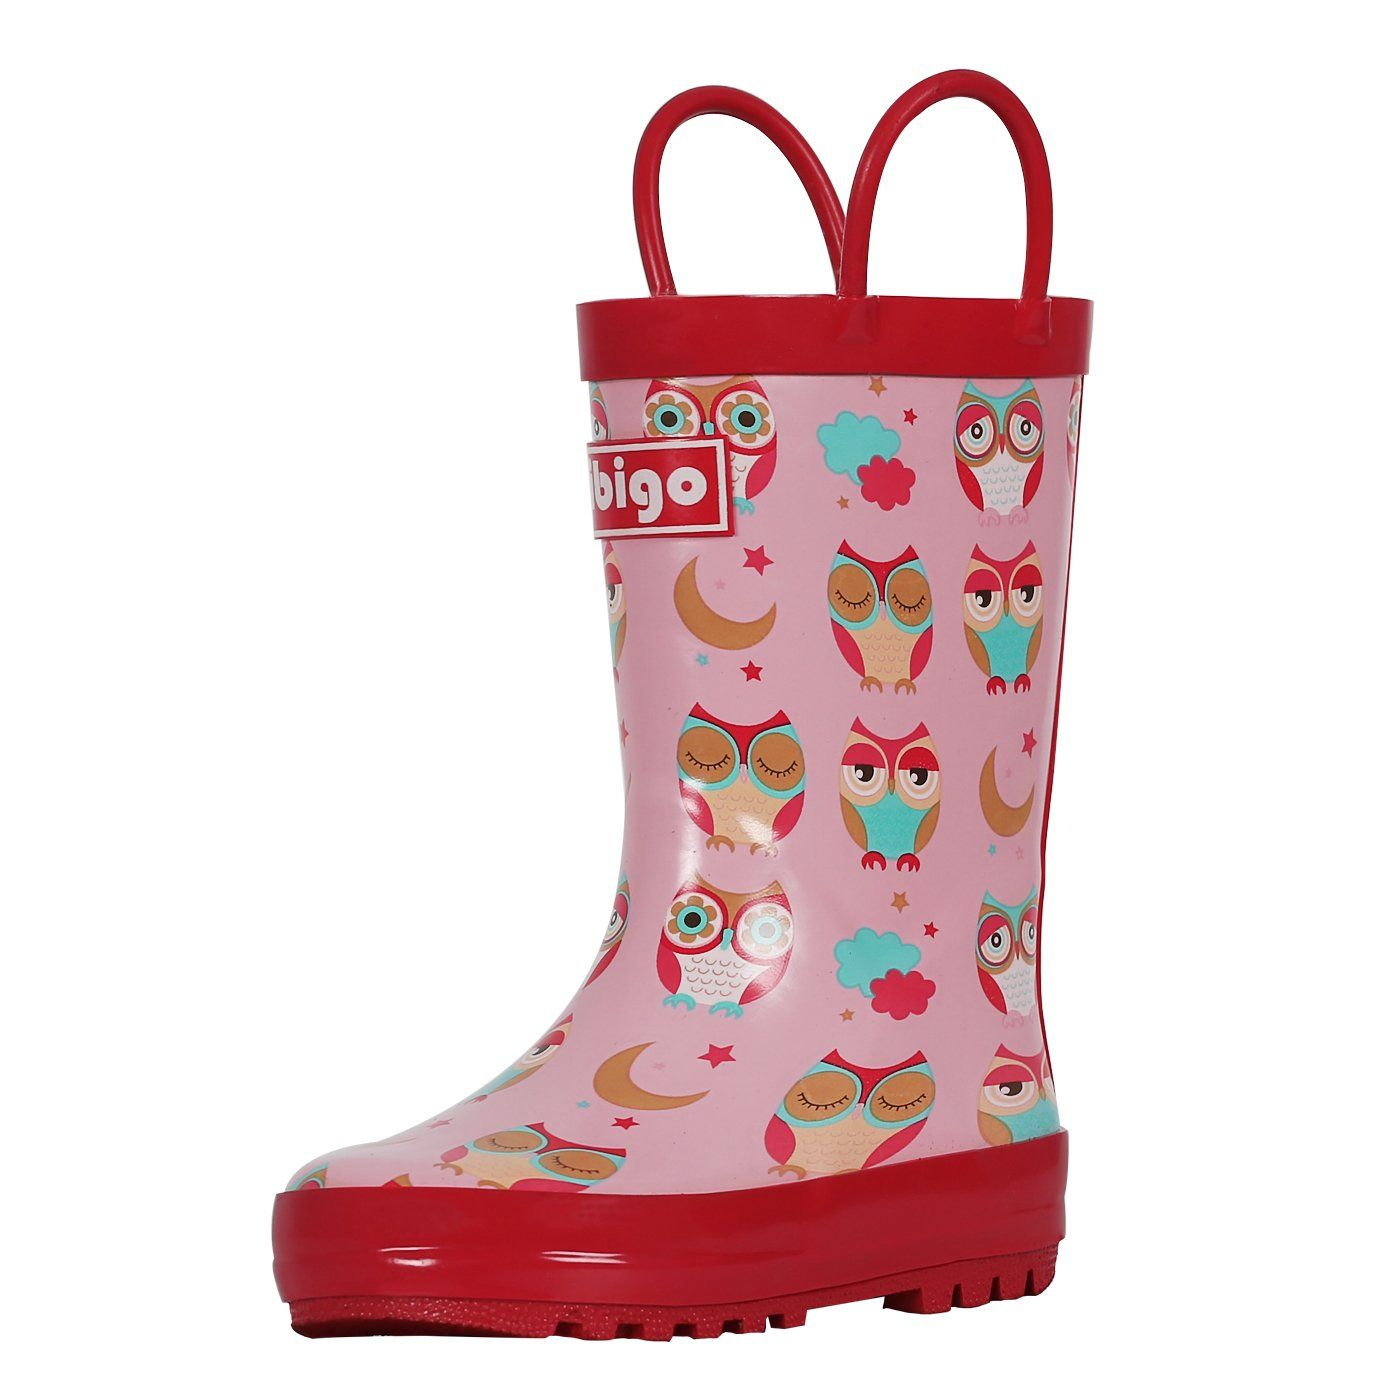 Short Girl Rain Boots for Toddler and Kids Rubber Rain Boots with Easy-On Handles Red